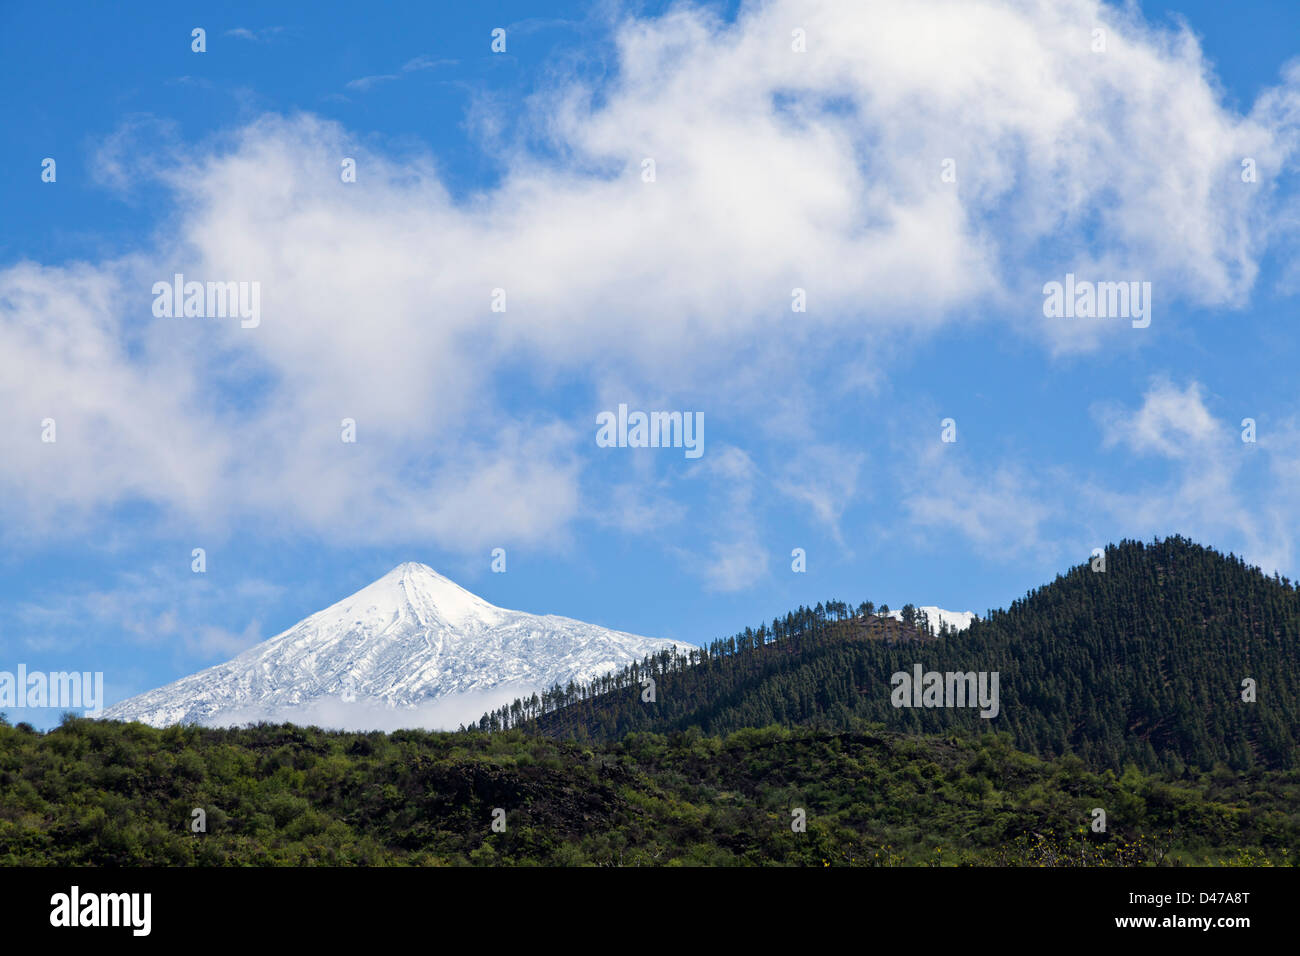 Snow covered mount Teide seen from Santiago del Teide, Tenerife, Canary Islands, Spain, - Stock Image